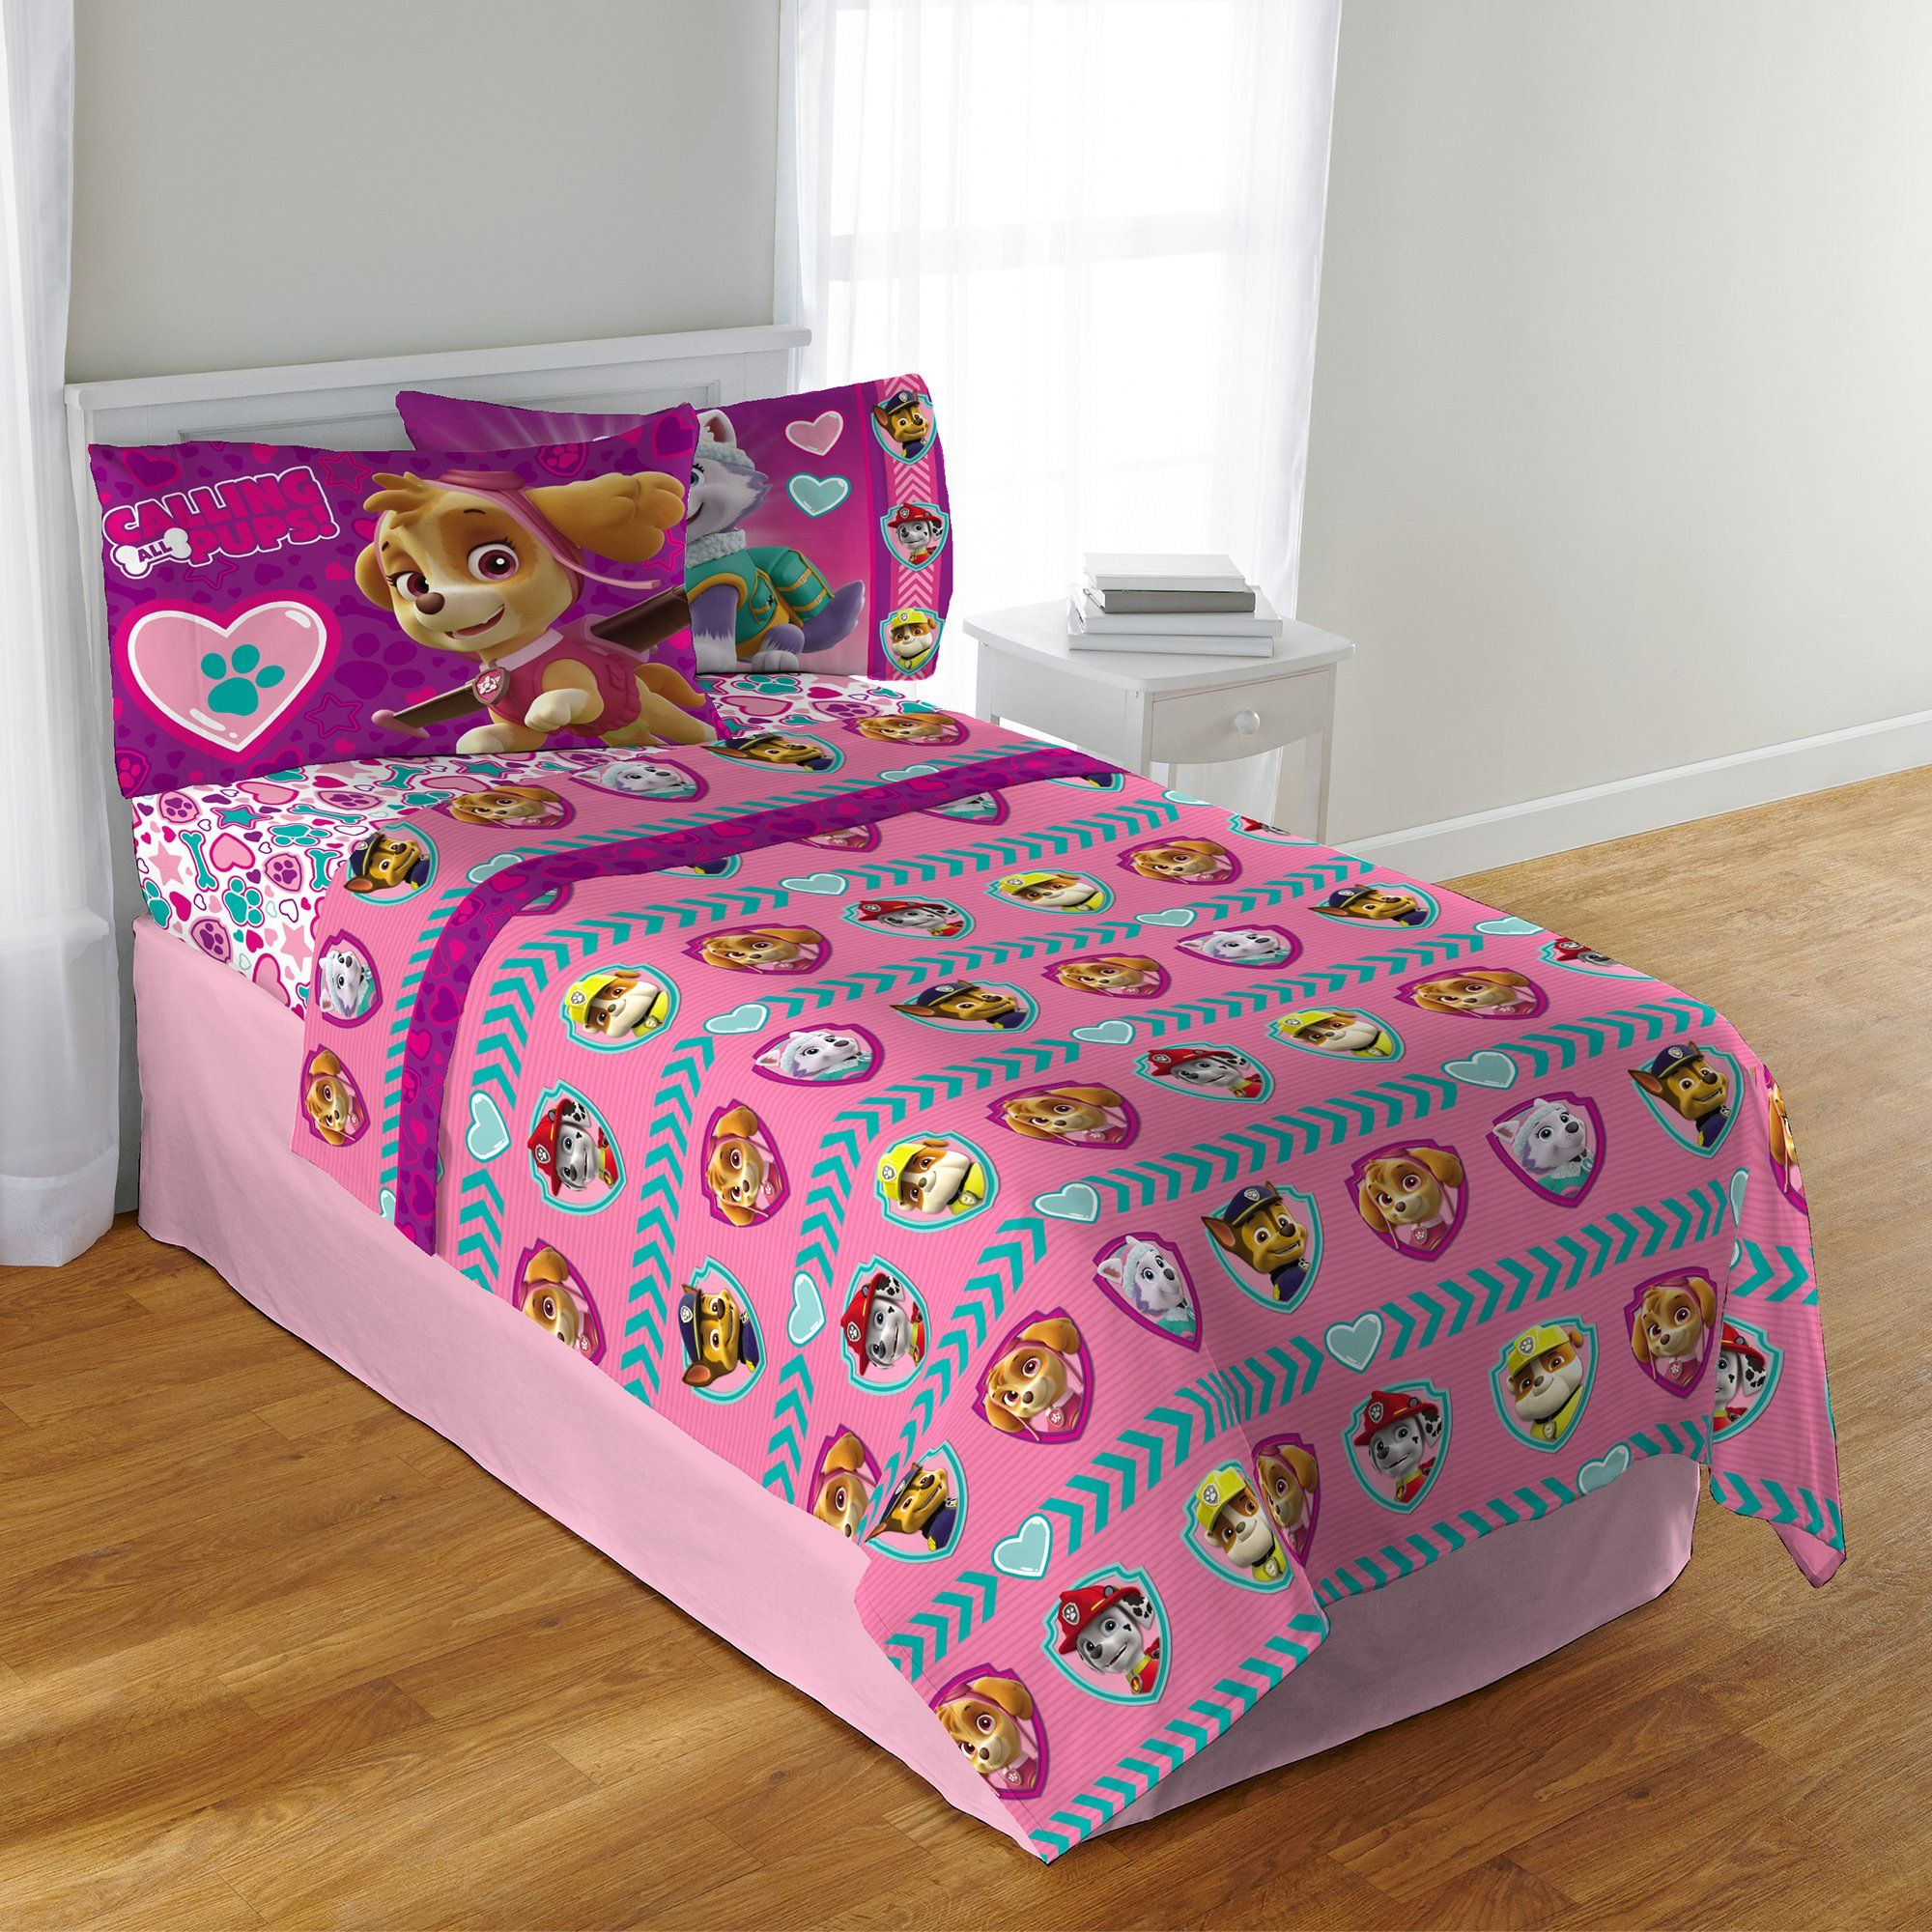 Ca 3 Piece Girls Pink Paw Patrol Sheet Set Twin Sized Cute Teal Blue Puppy Bedding Dogs Skye Sweetie Marshall Rub Twin Sheet Sets Pink Sheets Paw Patrol Sheets